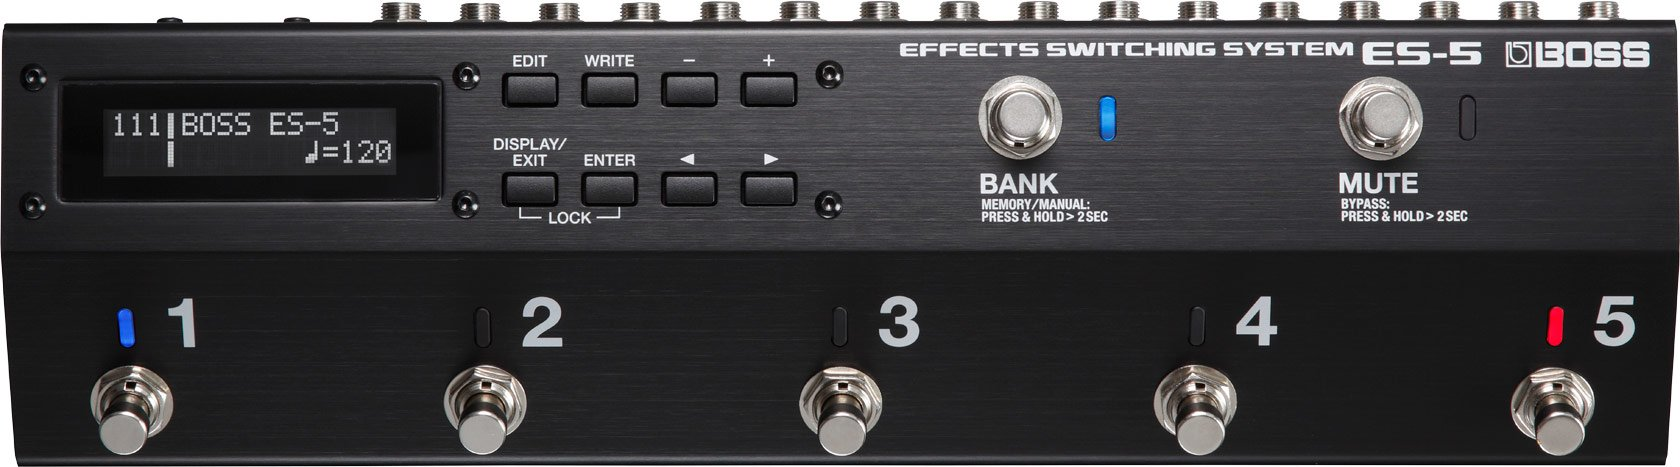 BOSS ES-5 Effects Switching System